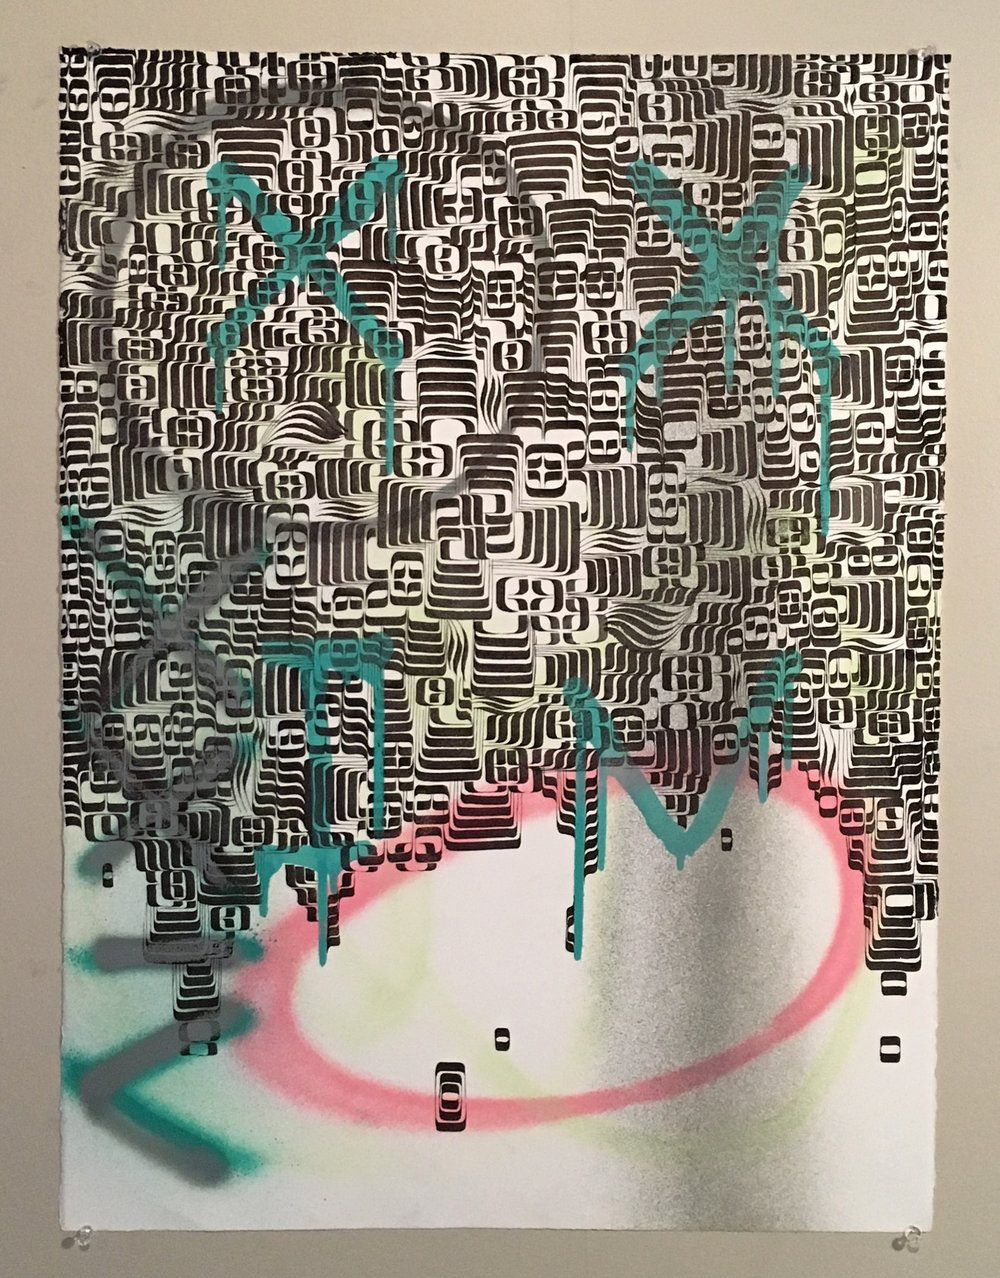 Mixed medium on BFK Rives. 29 in.by 22 in. NFS